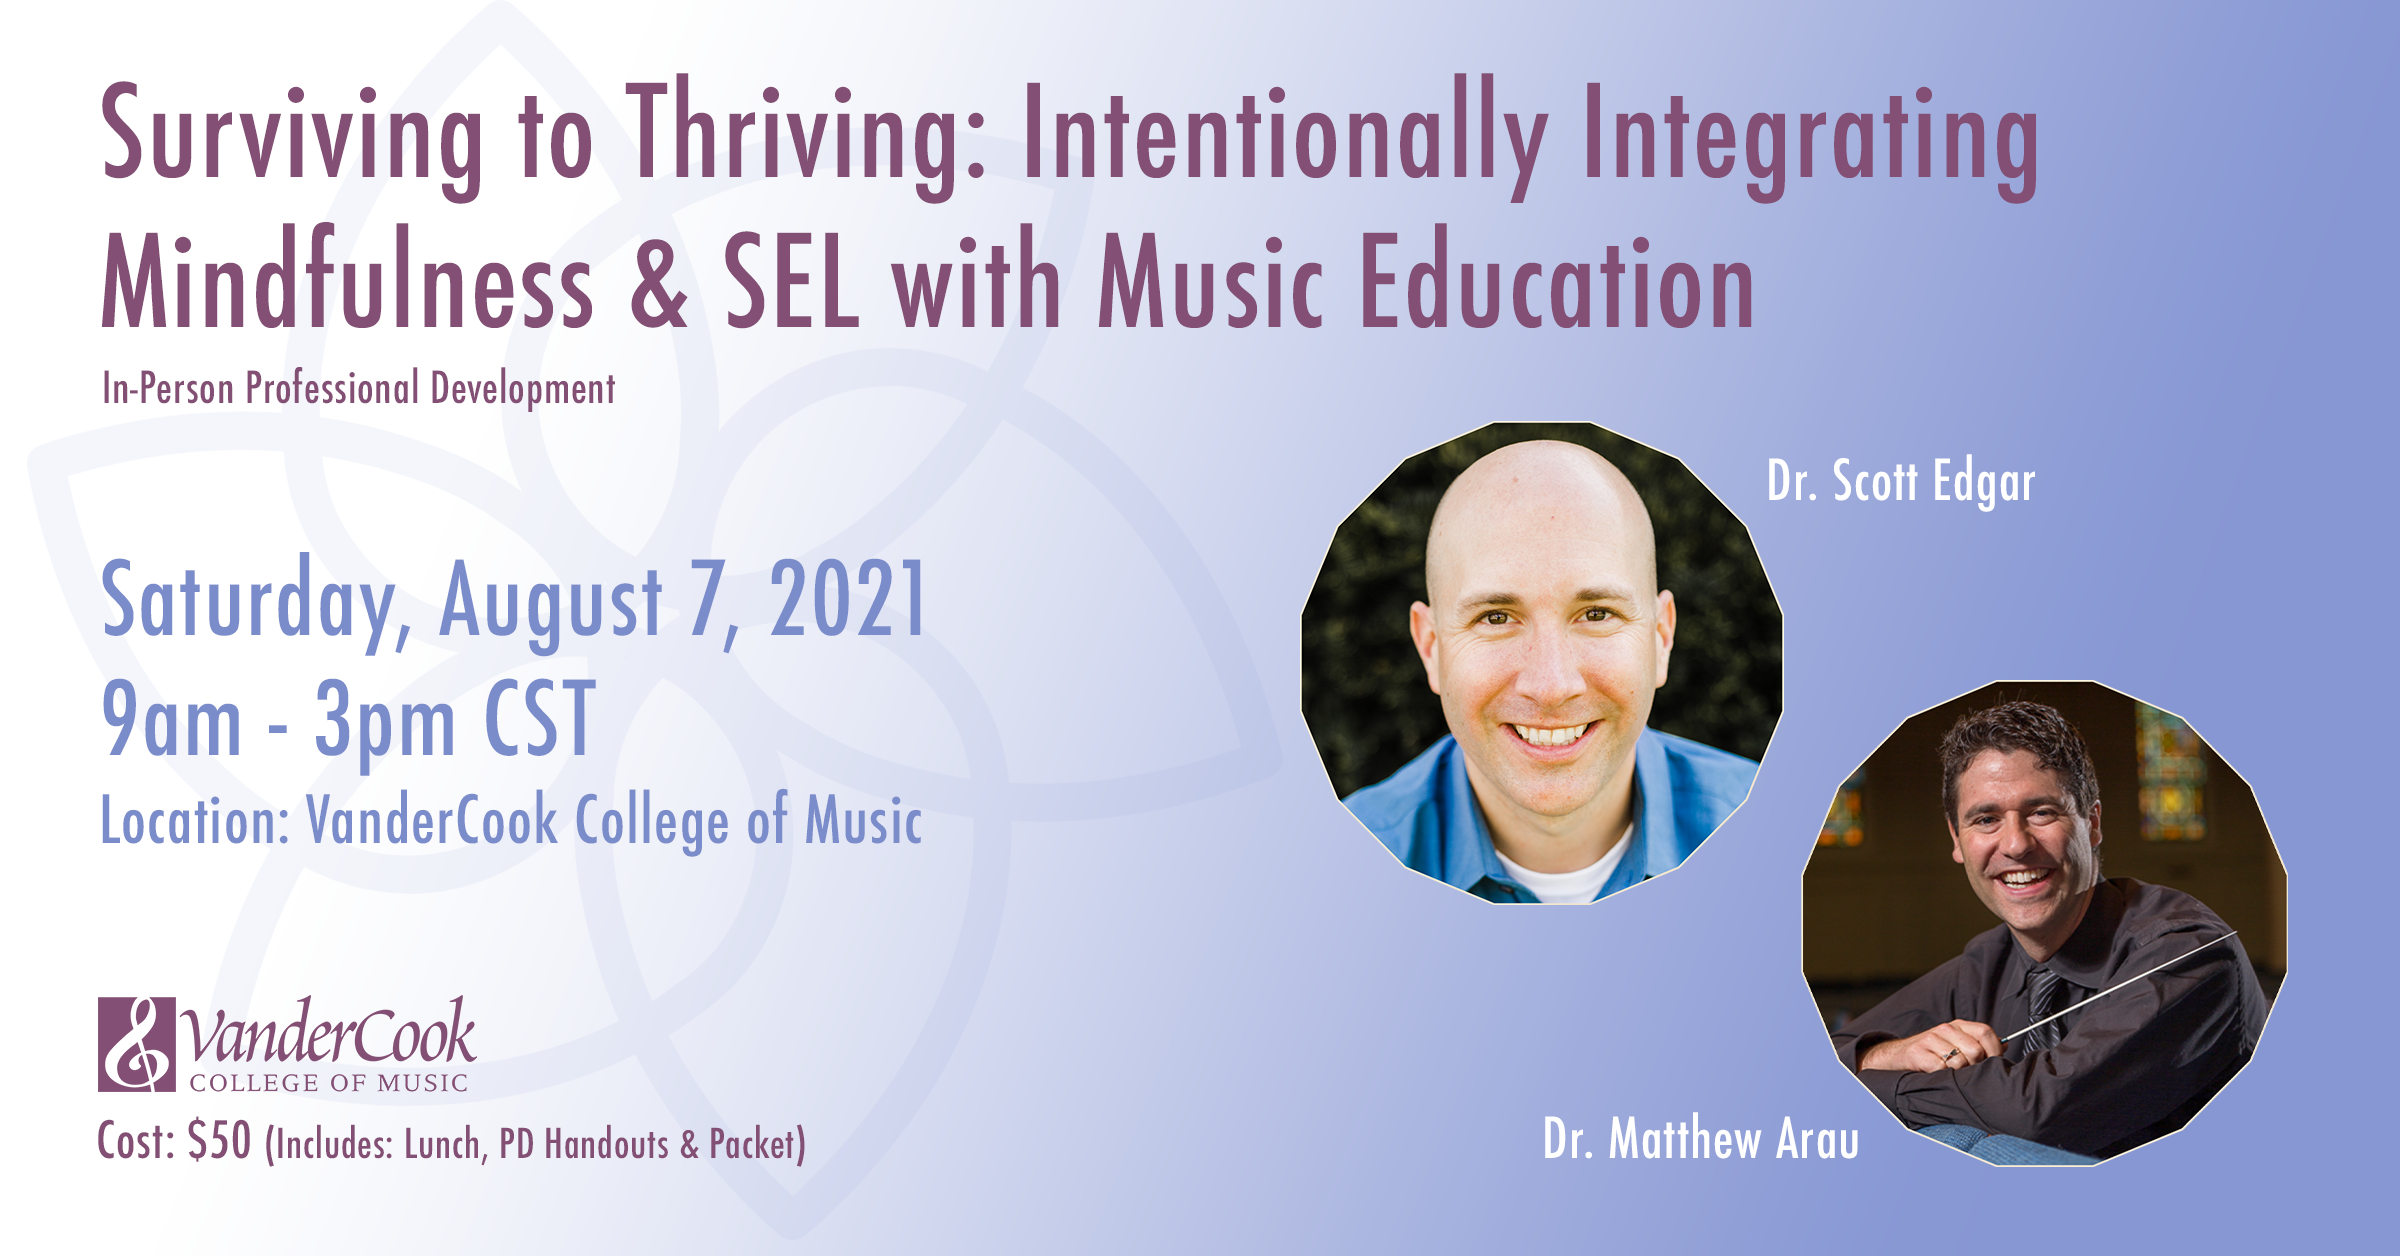 Surviving to Thriving- Intentionally Integrating Mindfulness & SEL with Music Education